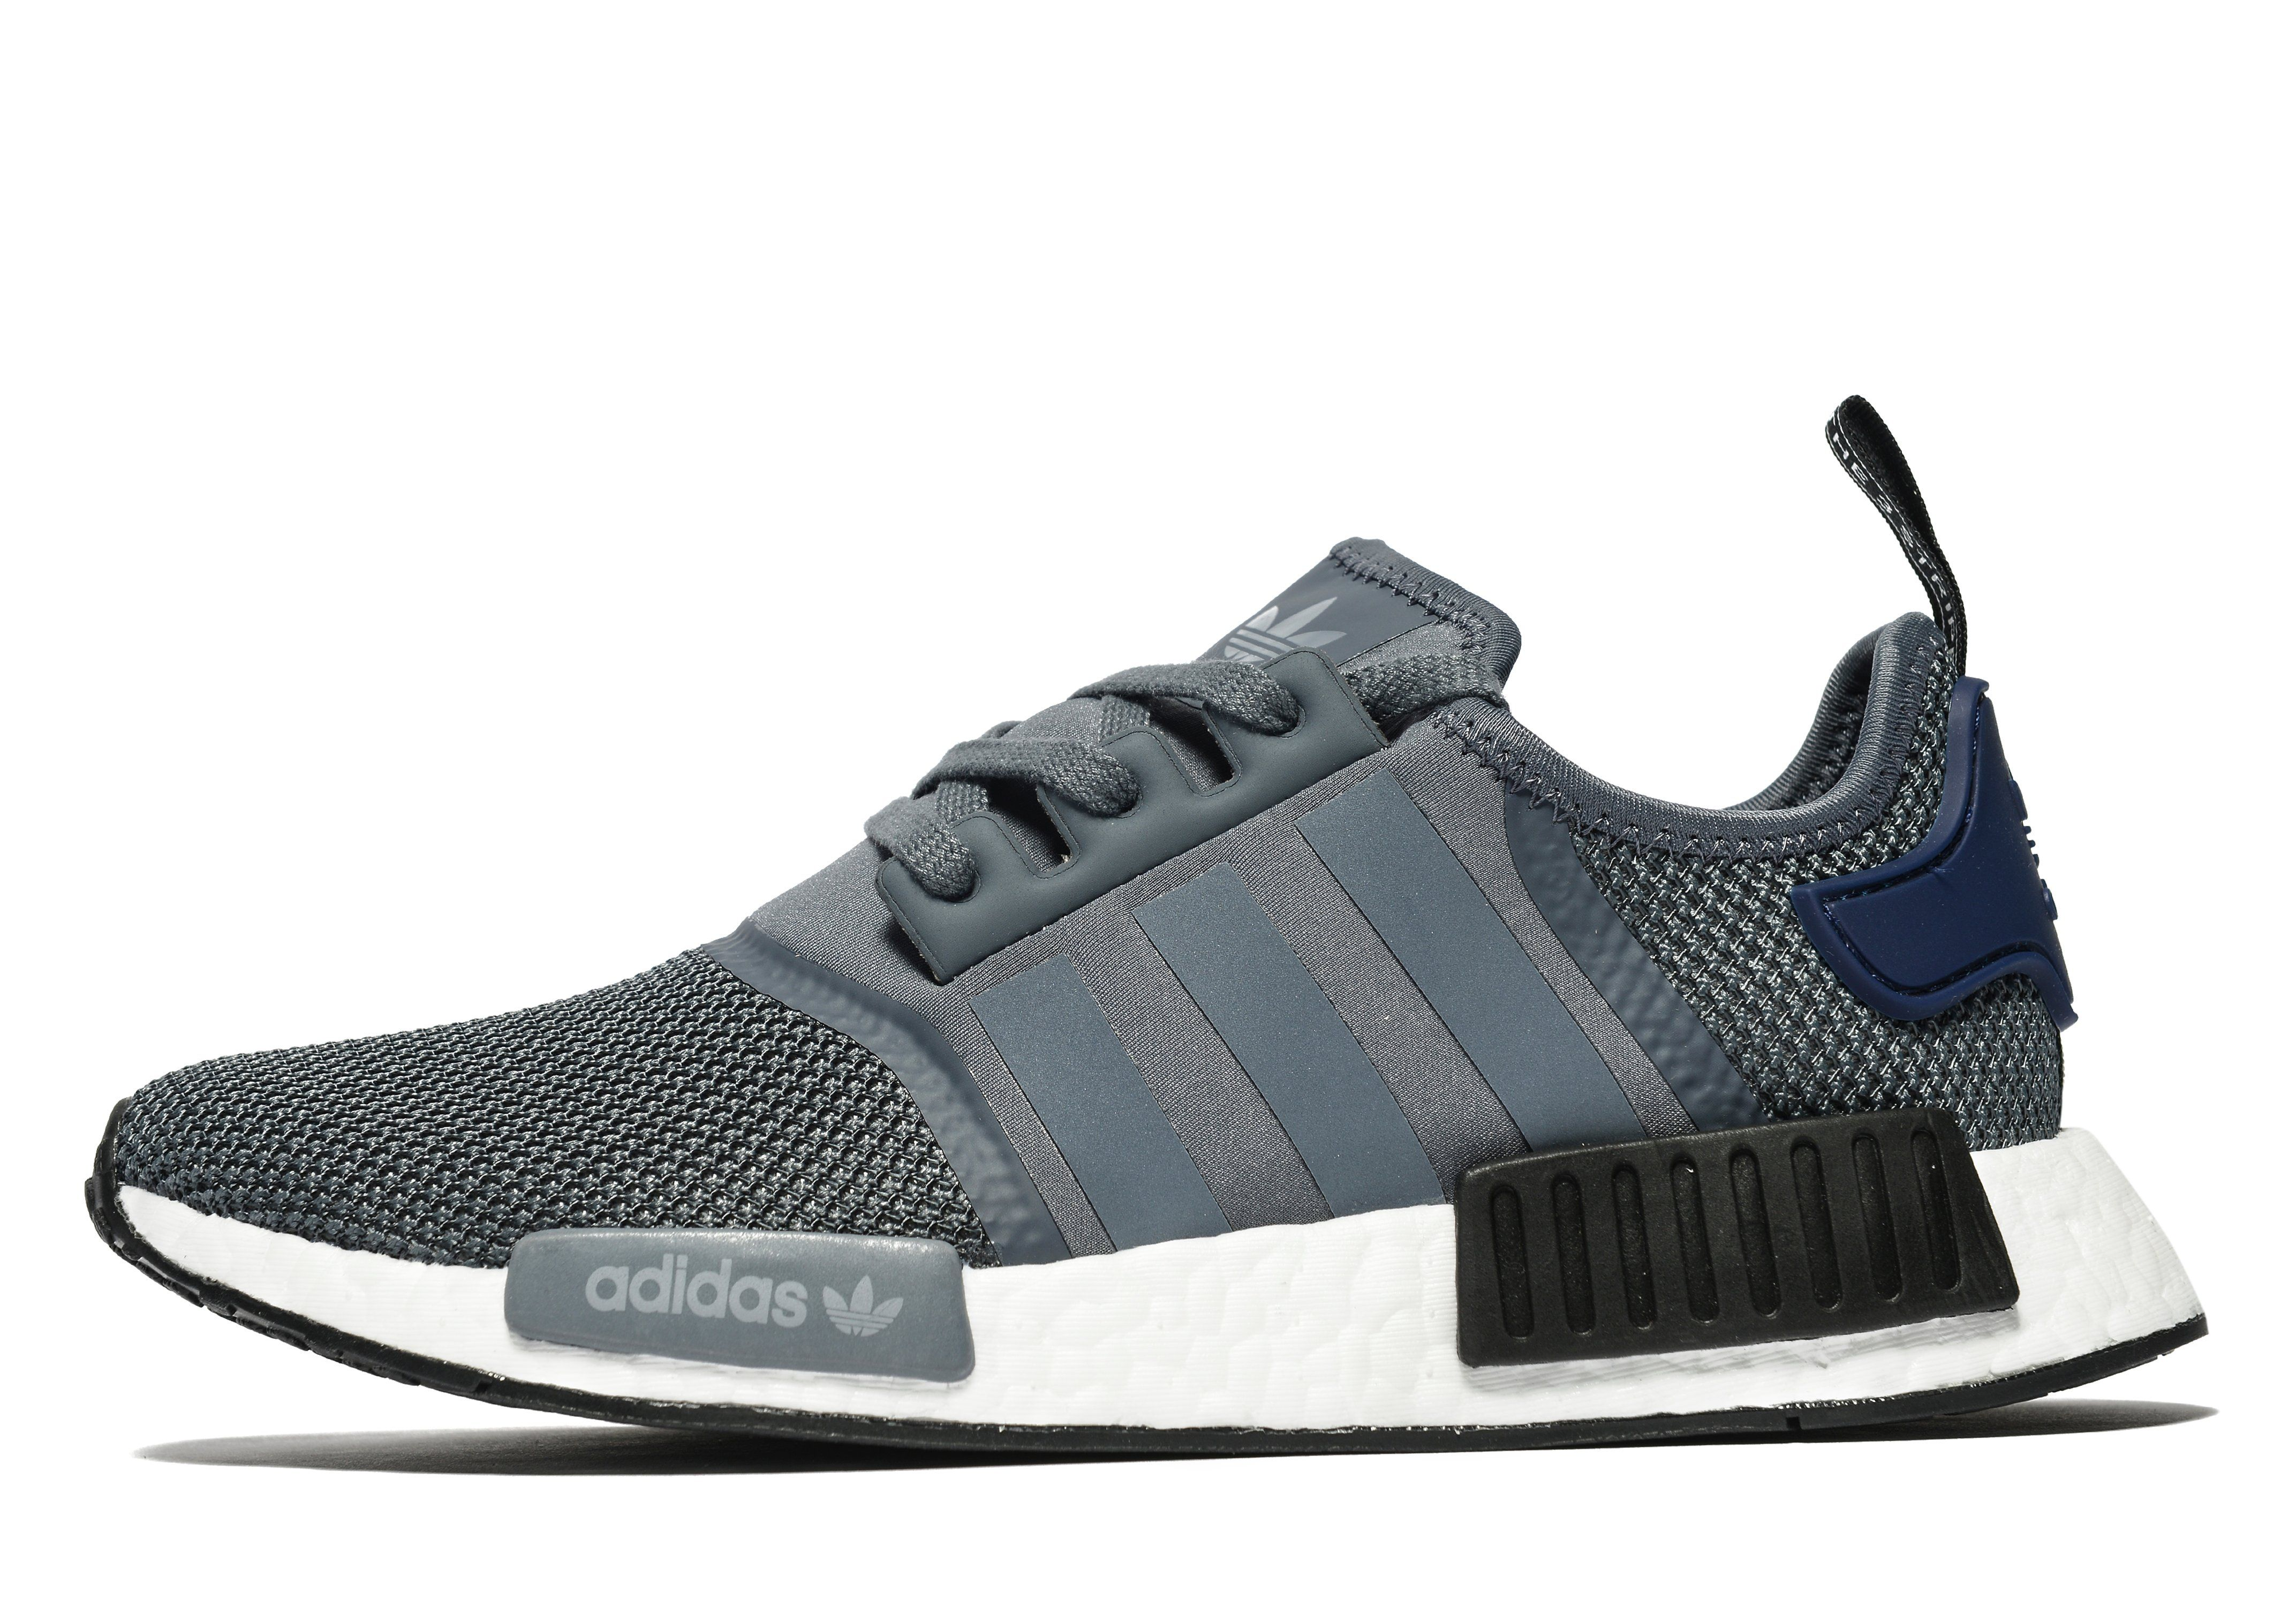 Image result for adidas nmd